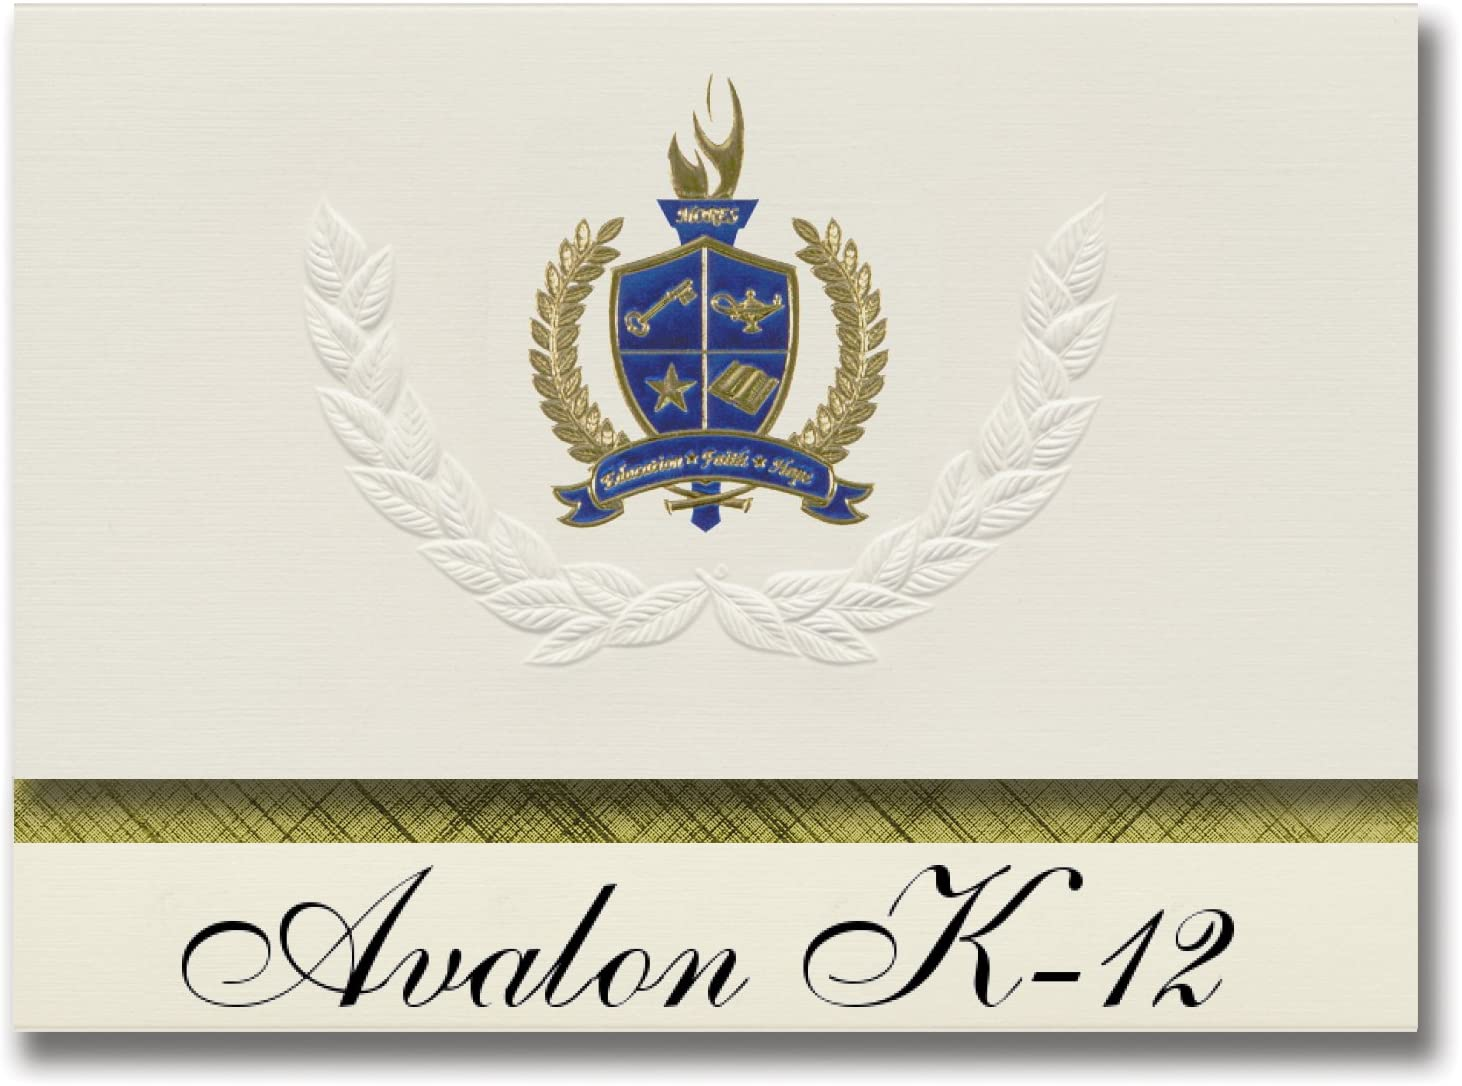 Signature Announcements Avalon K-12 (Santa Catalina, CA) Graduation Announcements, Presidential style, Elite package of 25 with Gold & Blue Metallic Foil seal